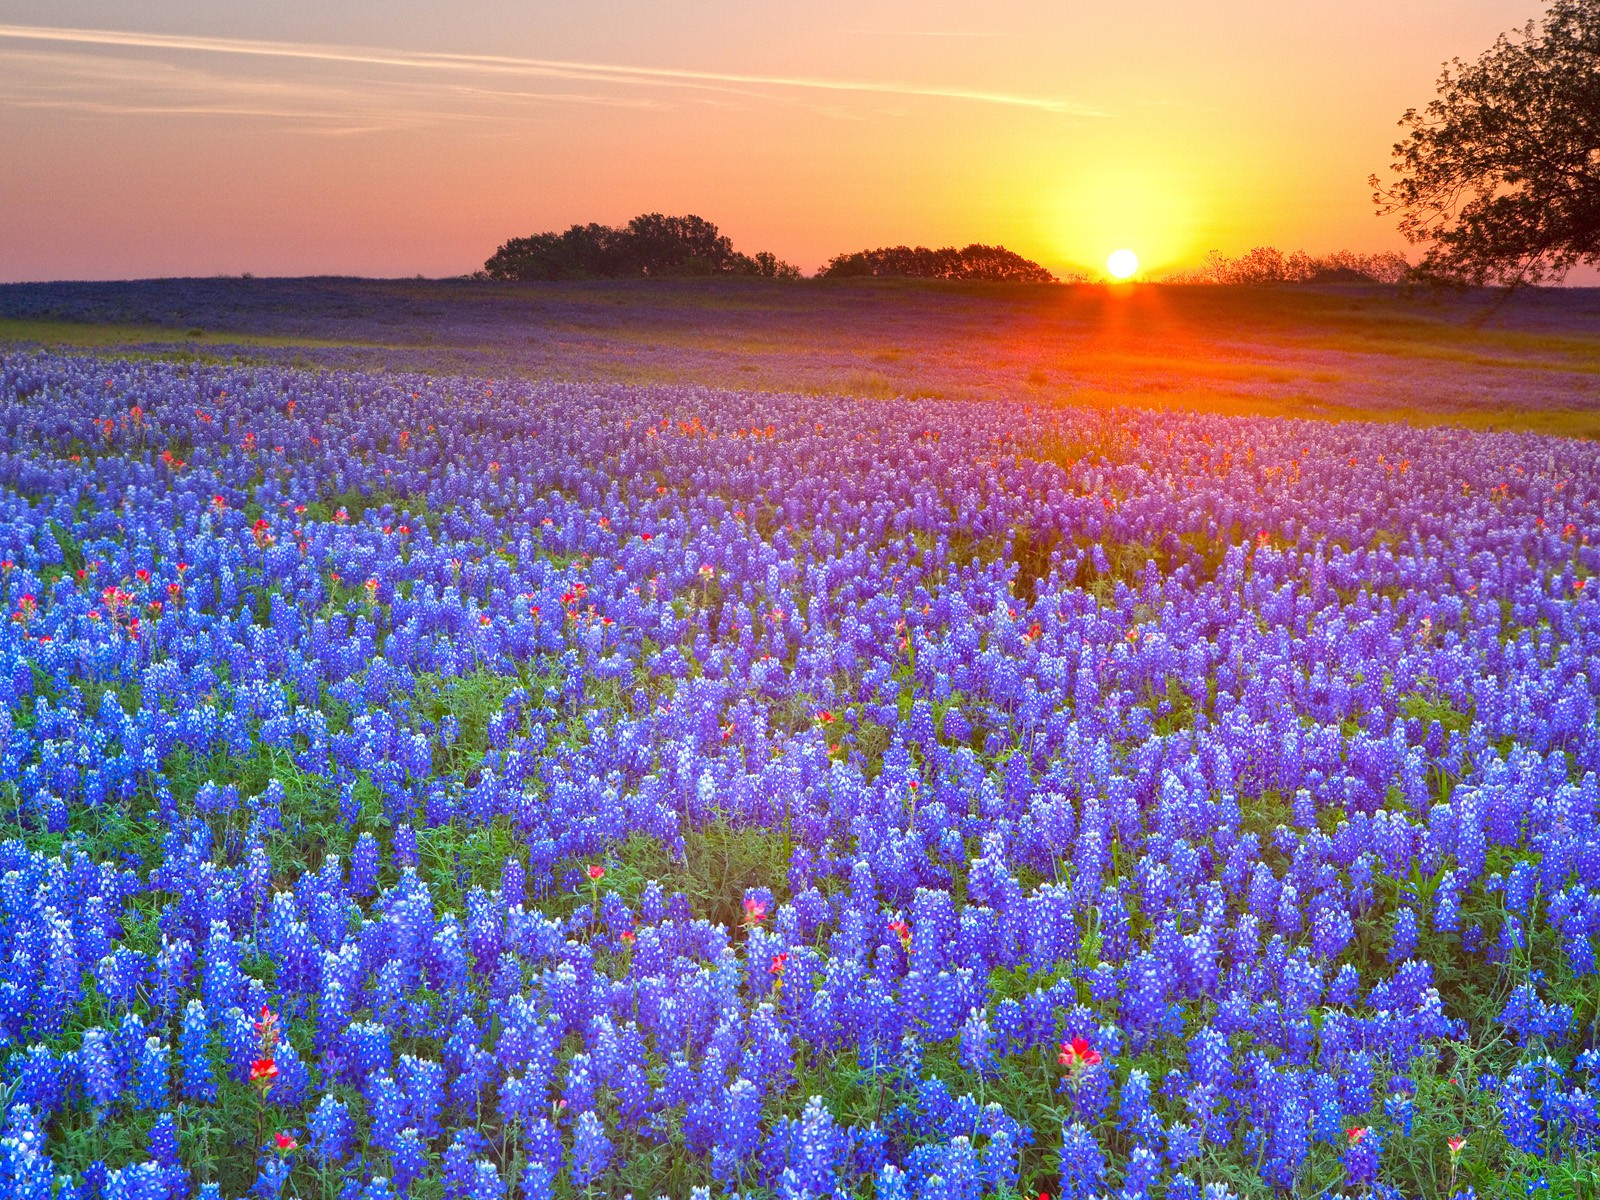 Country Texas Bluebonnet wallpaper 1600x1200 206392 WallpaperUP 1600x1200